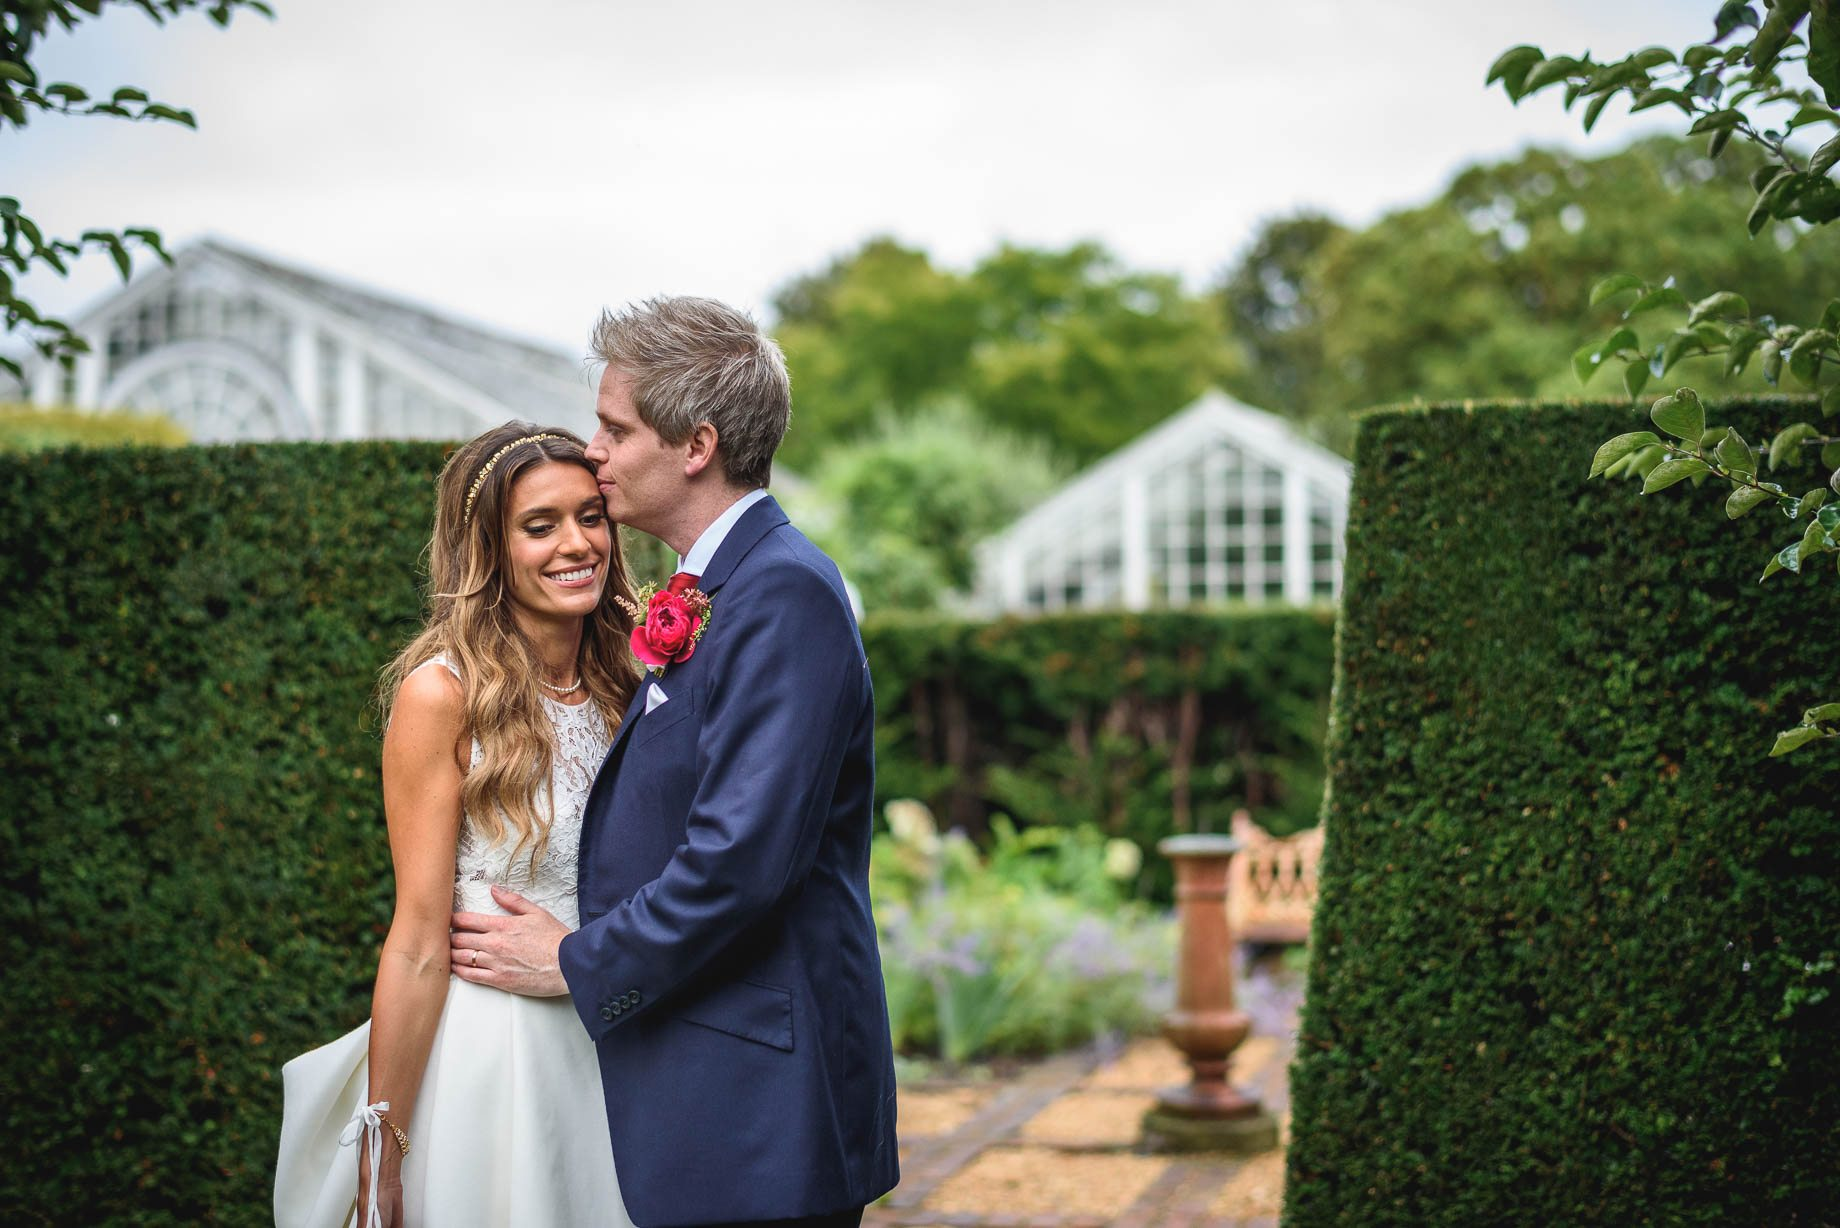 surrey-wedding-photography-guy-collier-photography-claire-and-tom-179-of-227